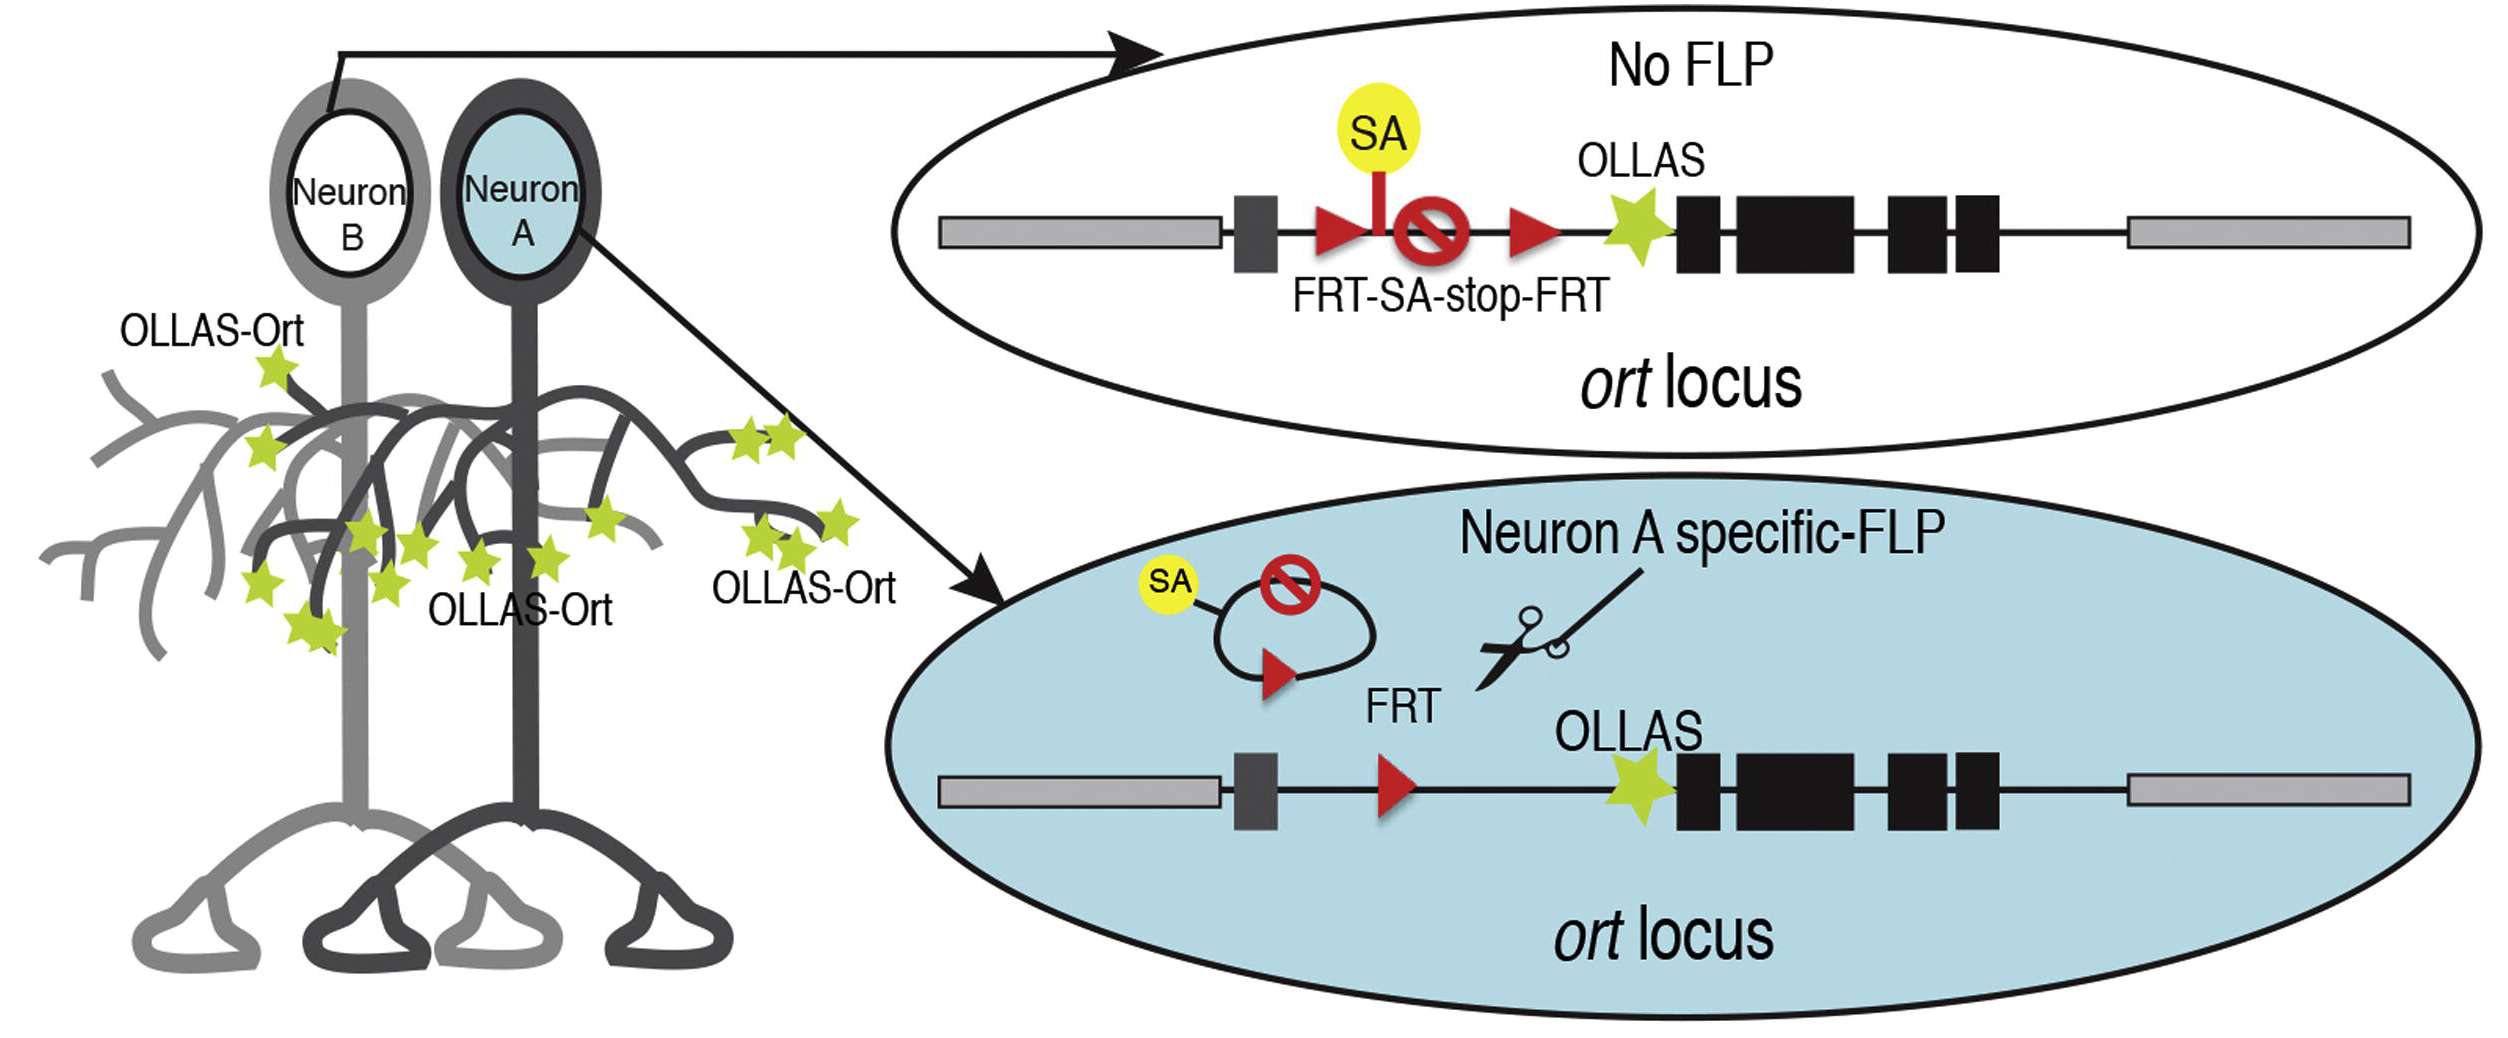 Figure of STaR postsynaptic marking from Chen et al. (2013), Cell-type-Specific Labeling of Synapses In Vivo through Synaptic Tagging with Recombination. Neuron 81: 280–293.